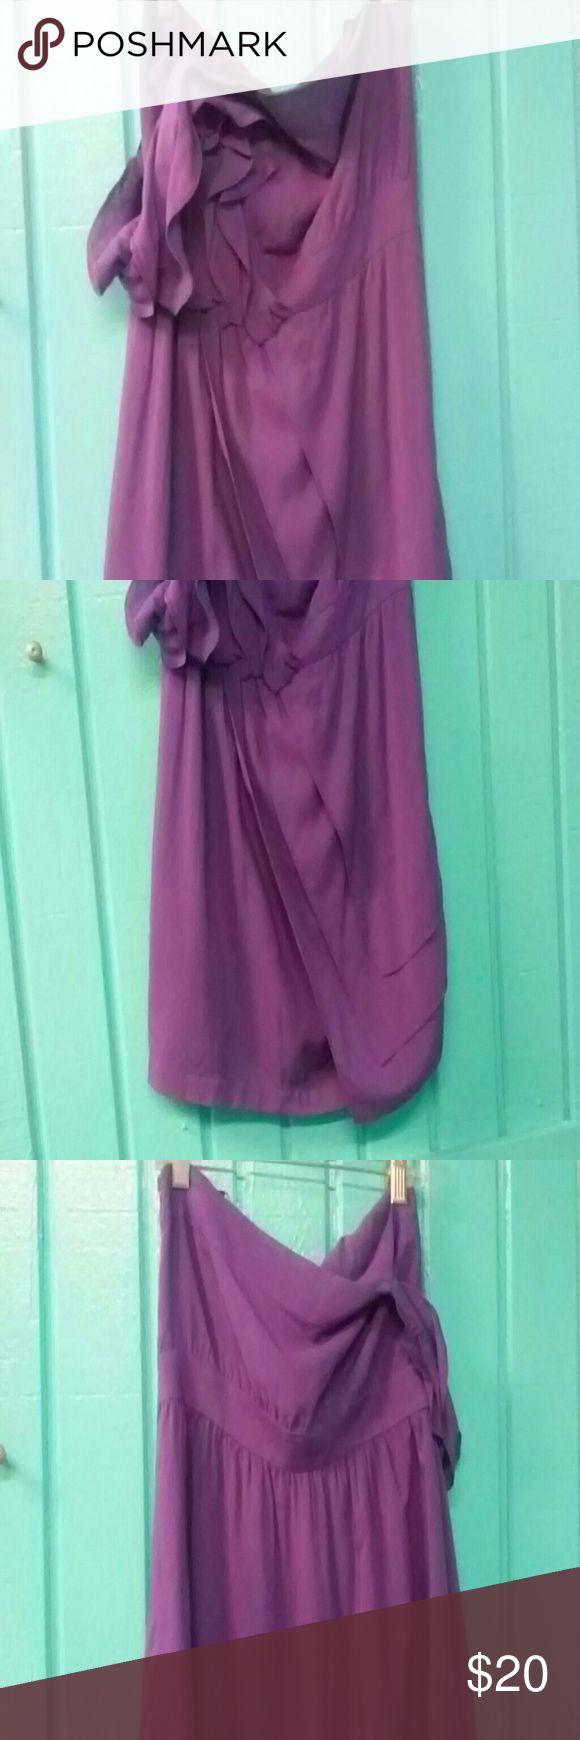 Bcbg purple short dress Bcbg purple short dress. Sleeveless one strap over arm size s BCBG Dresses